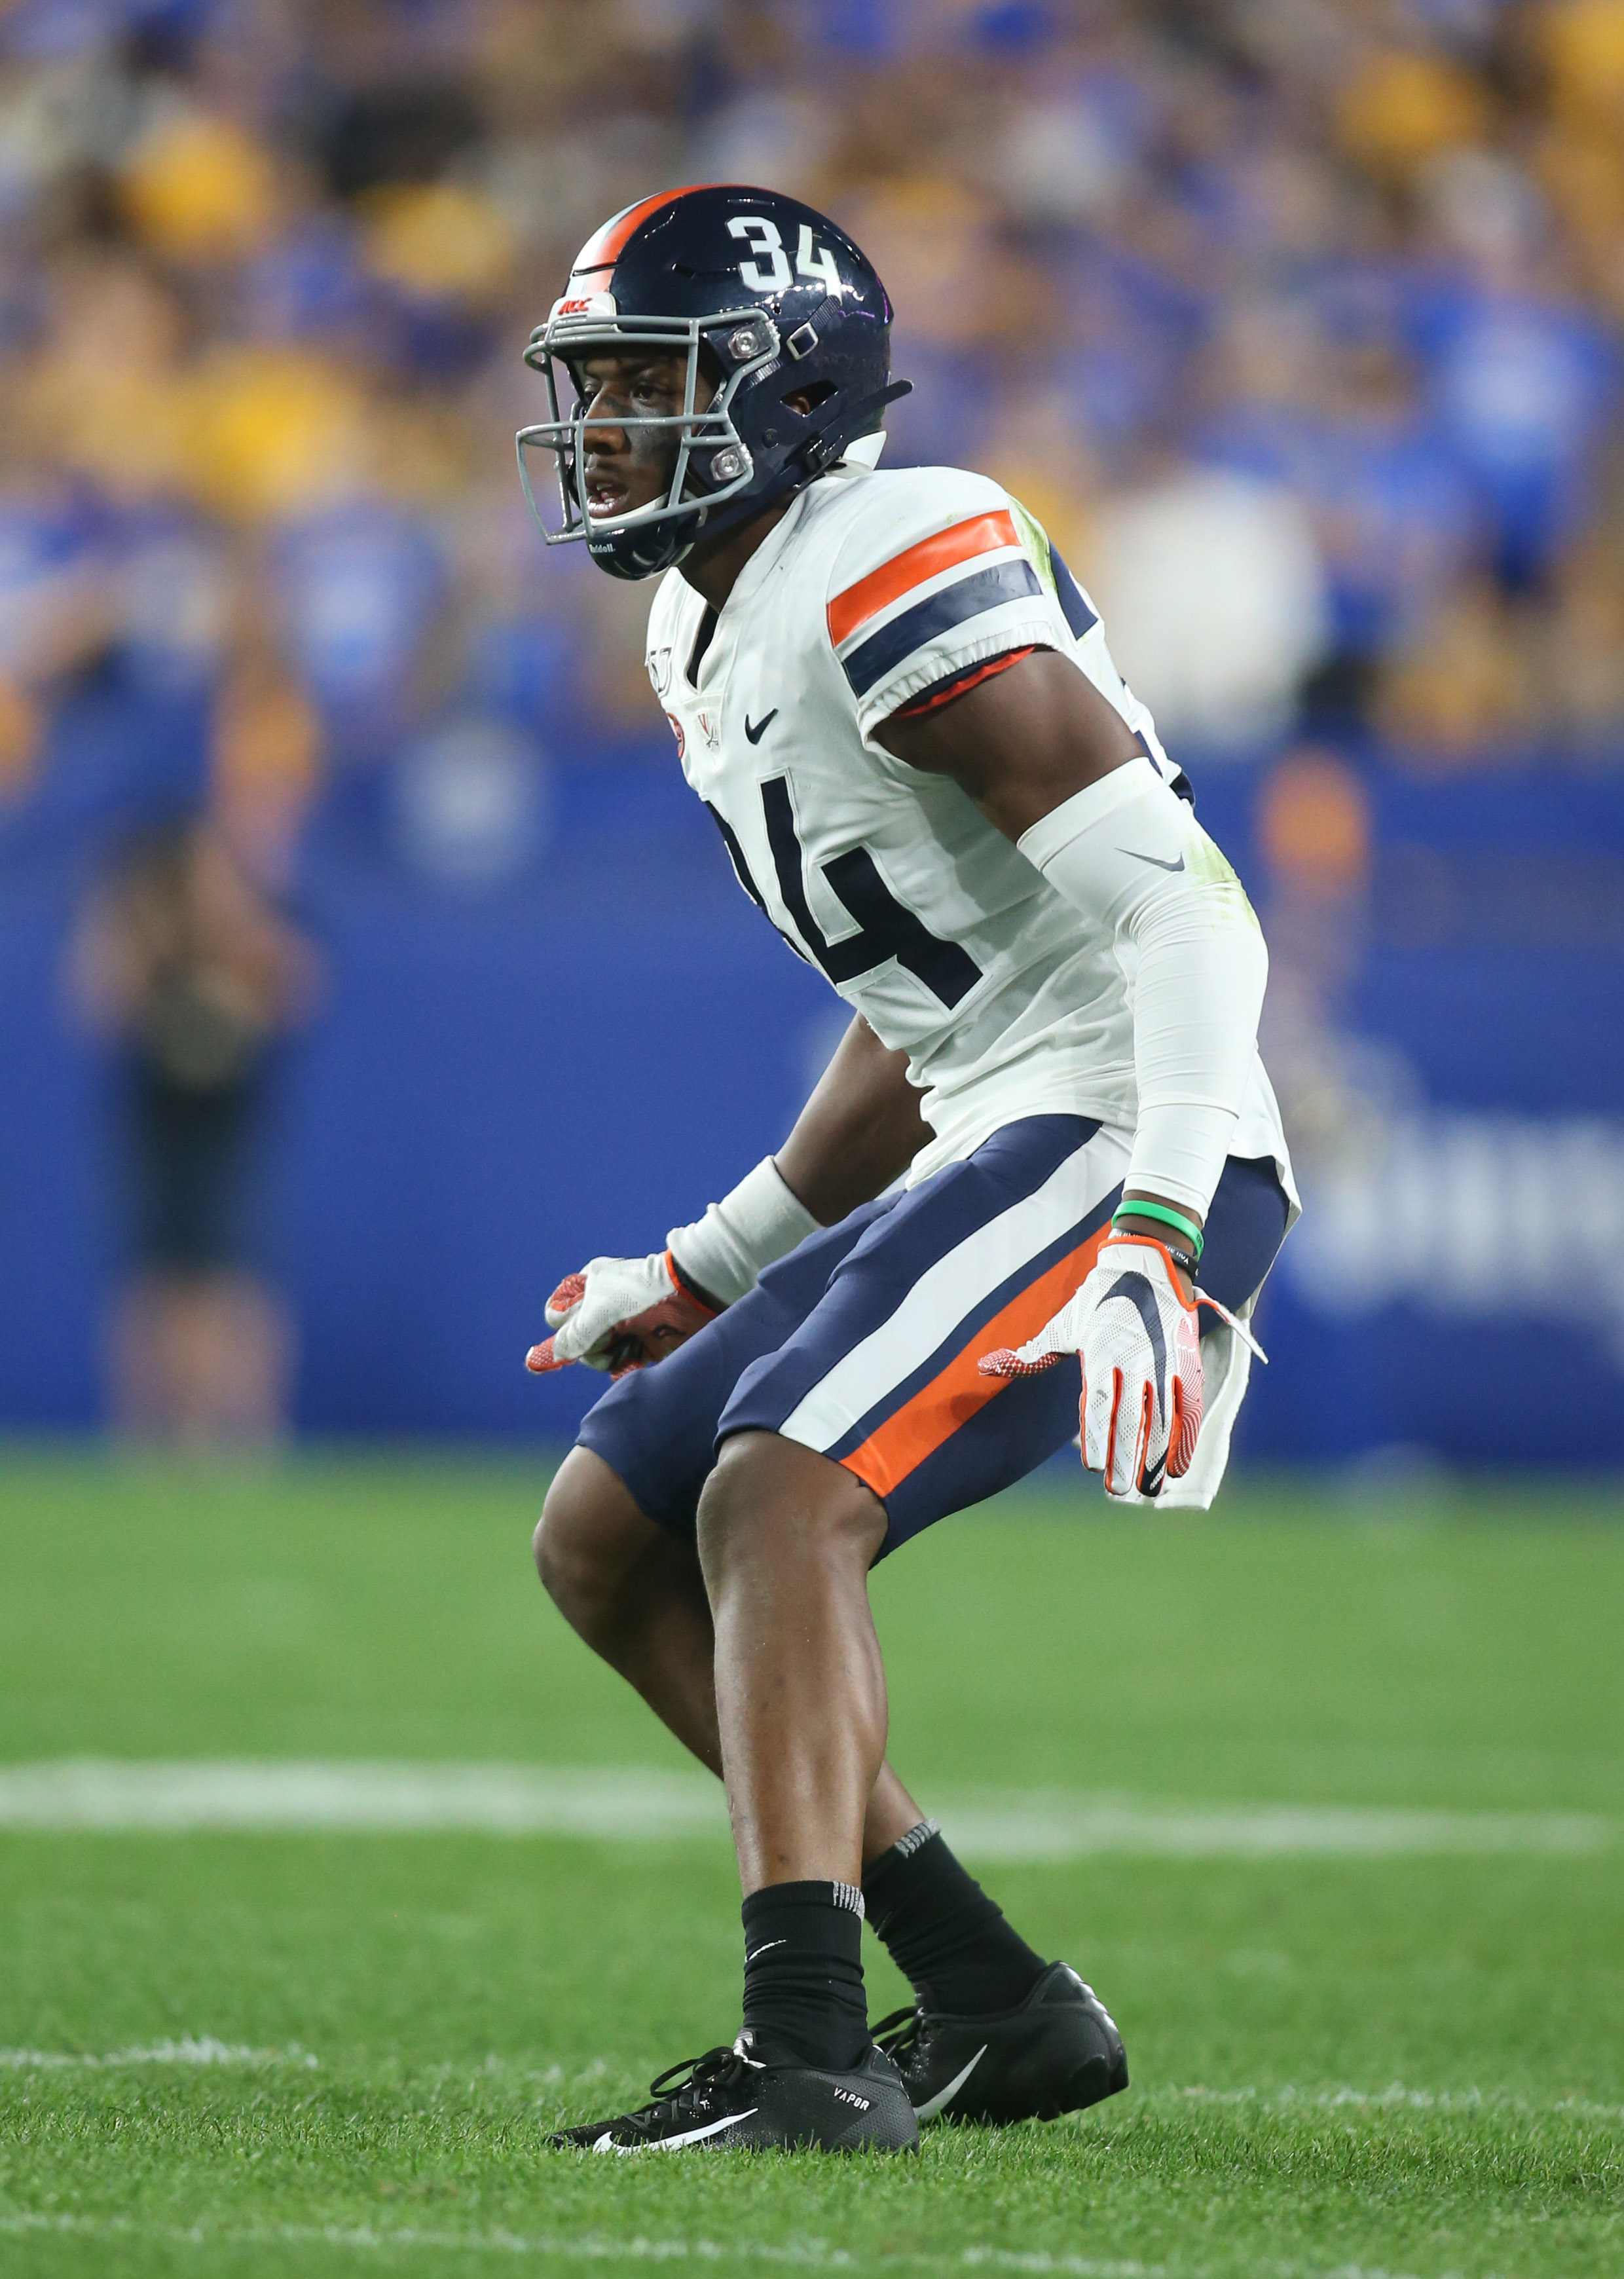 Virginia Cavaliers CB Bryce Hall defends against the Pittsburgh Panthers, Aug. 31, 2019.